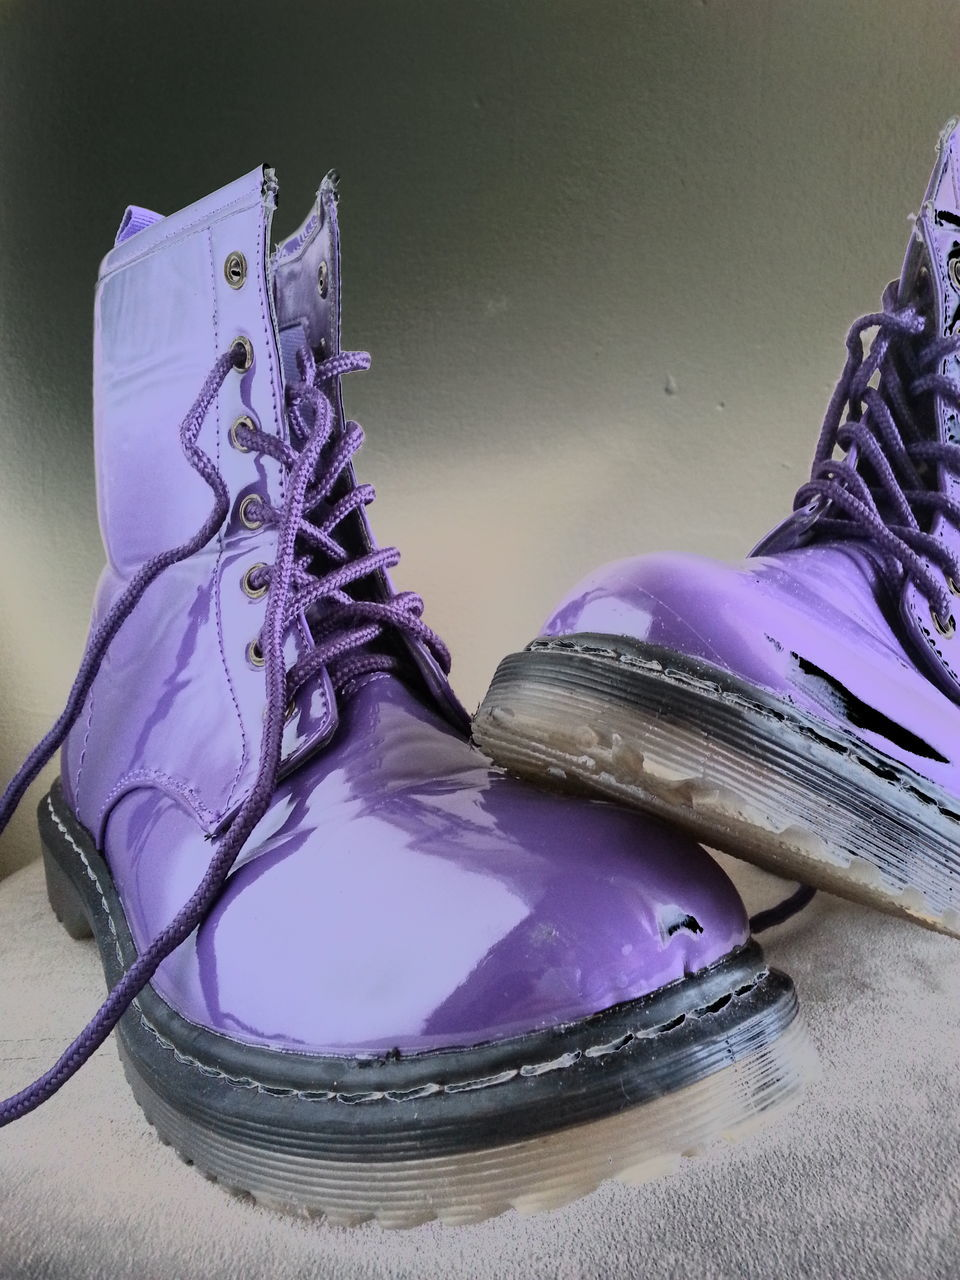 Close-Up Of Torn Purple Boots On Rug At Home